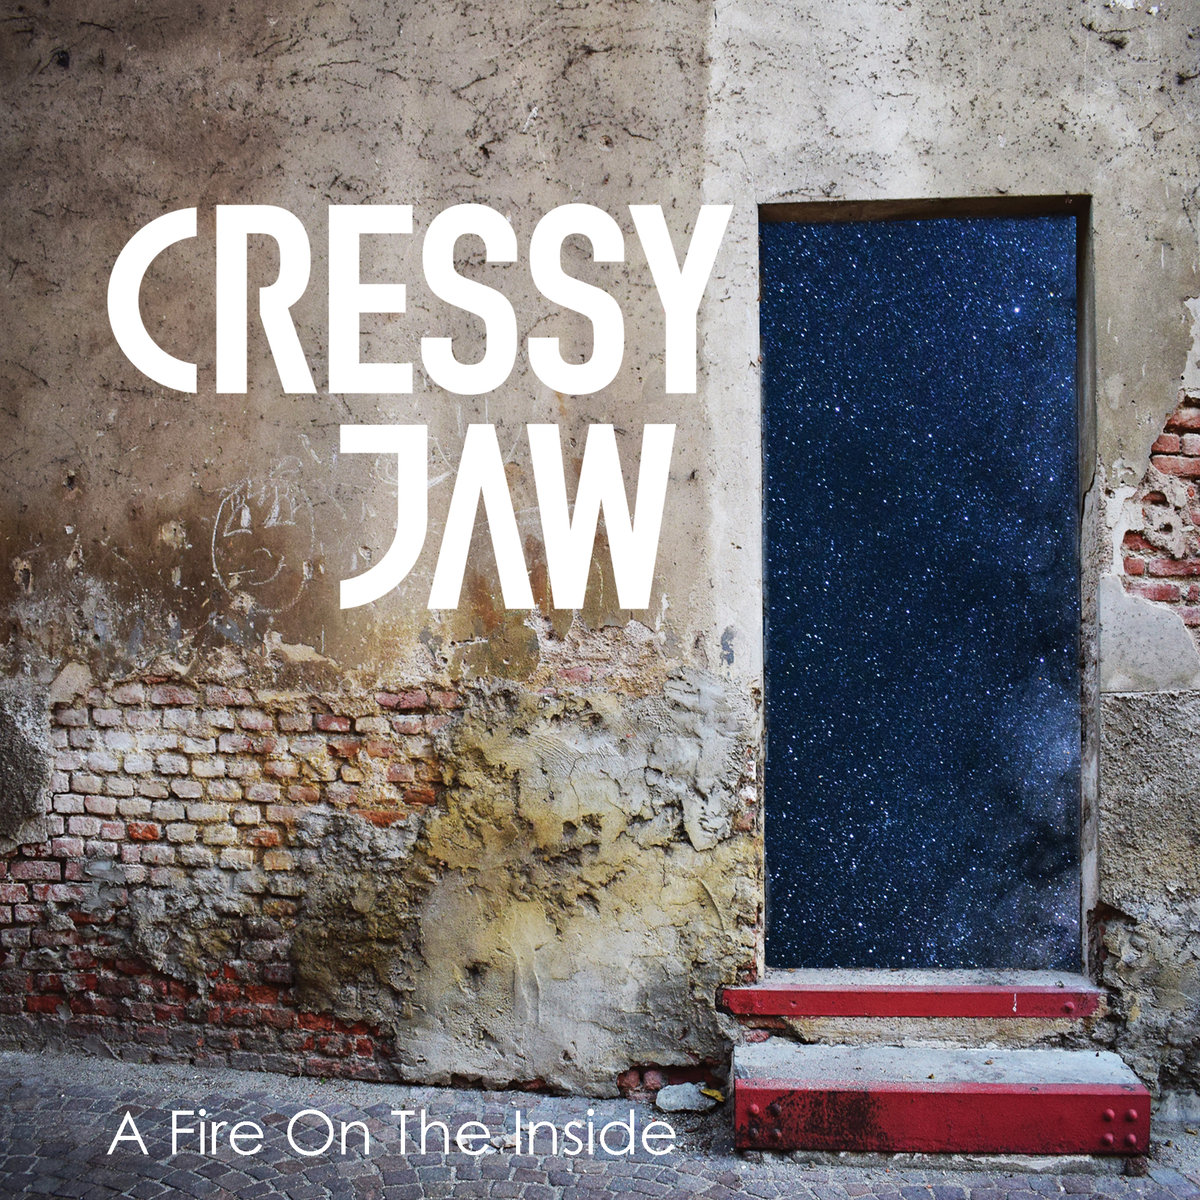 Cressy Jaw – A Fire On The Inside